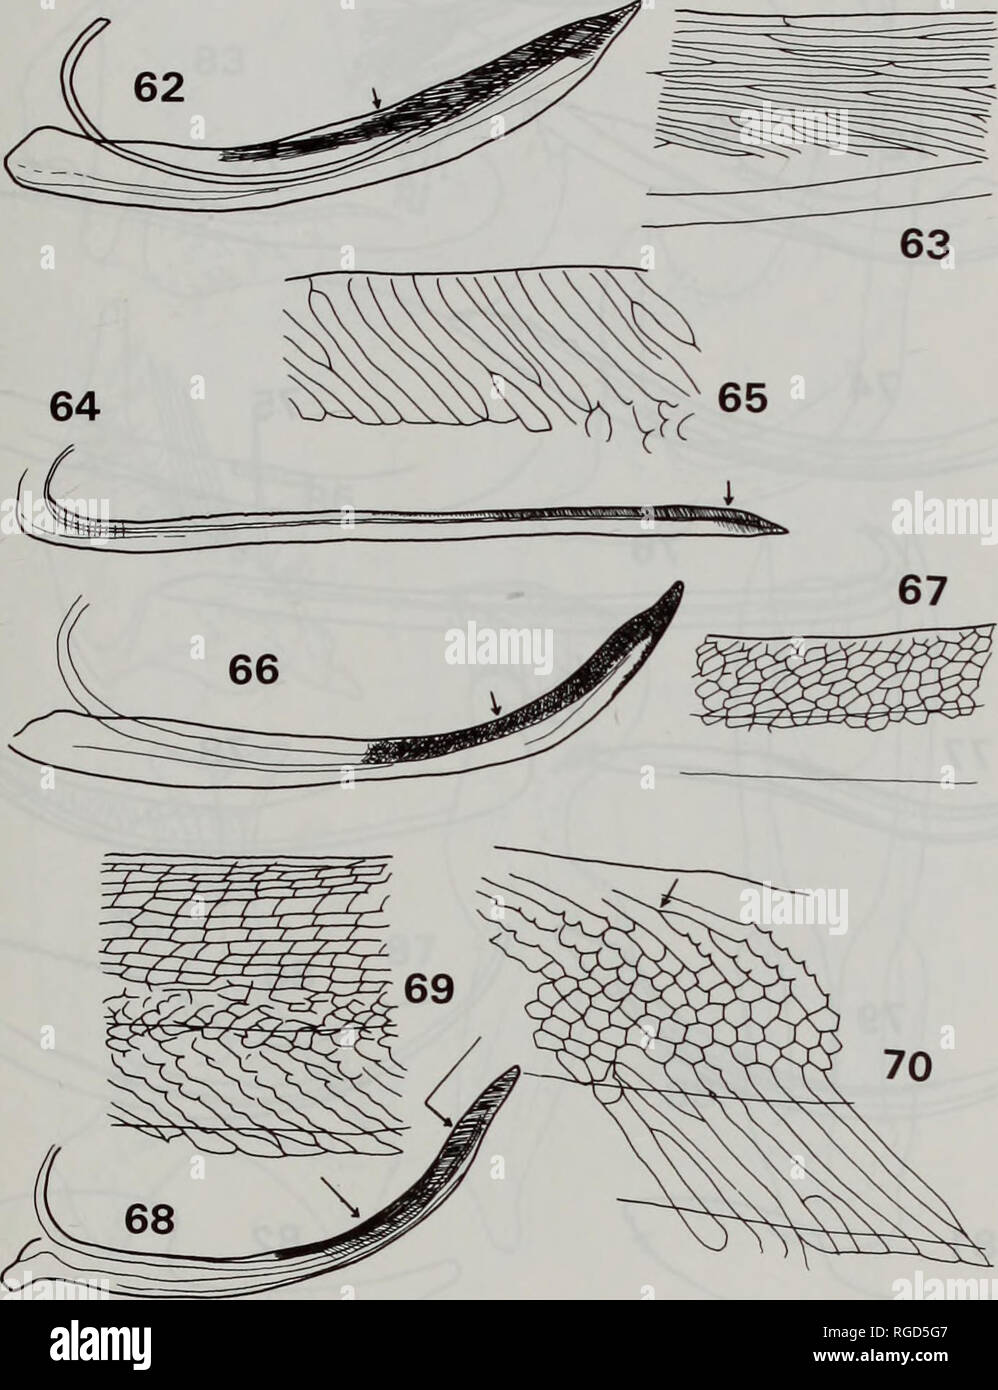 f83c1907c19 Bulletin of the Natural History Museum Entomology. CLASSIFICATION OF  SELENOCEPHALINE LEAFHOPPERS 35. Figs .